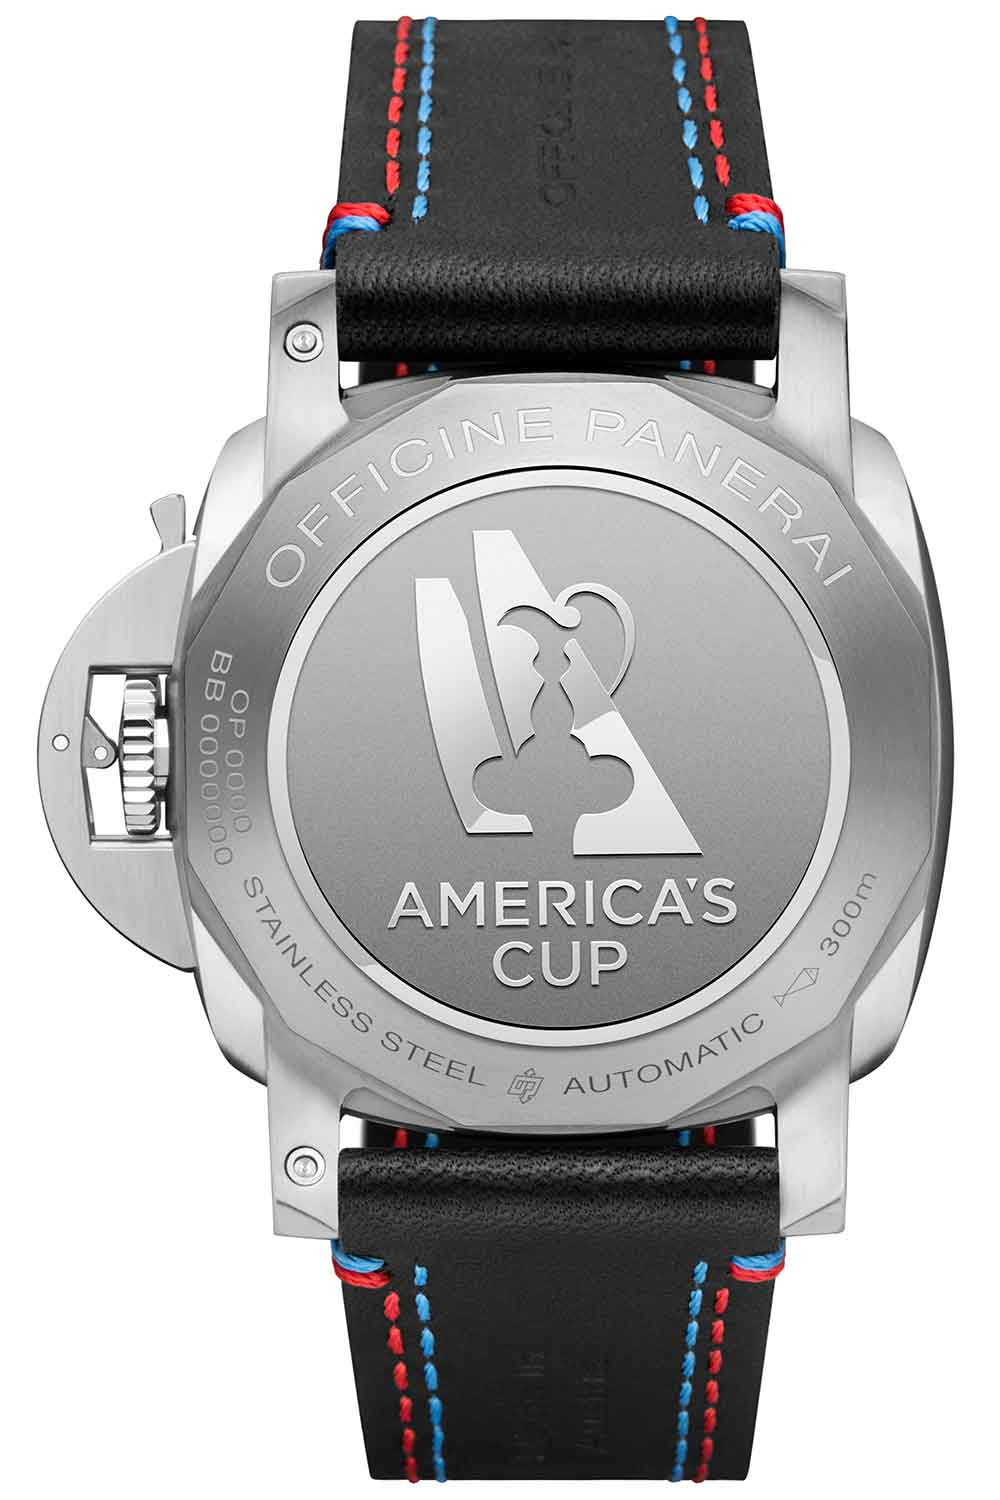 Panerai Luminor Marina 1950 America's Cup 3 Days Automatic Acciaio 44mm PAM00727 caseback